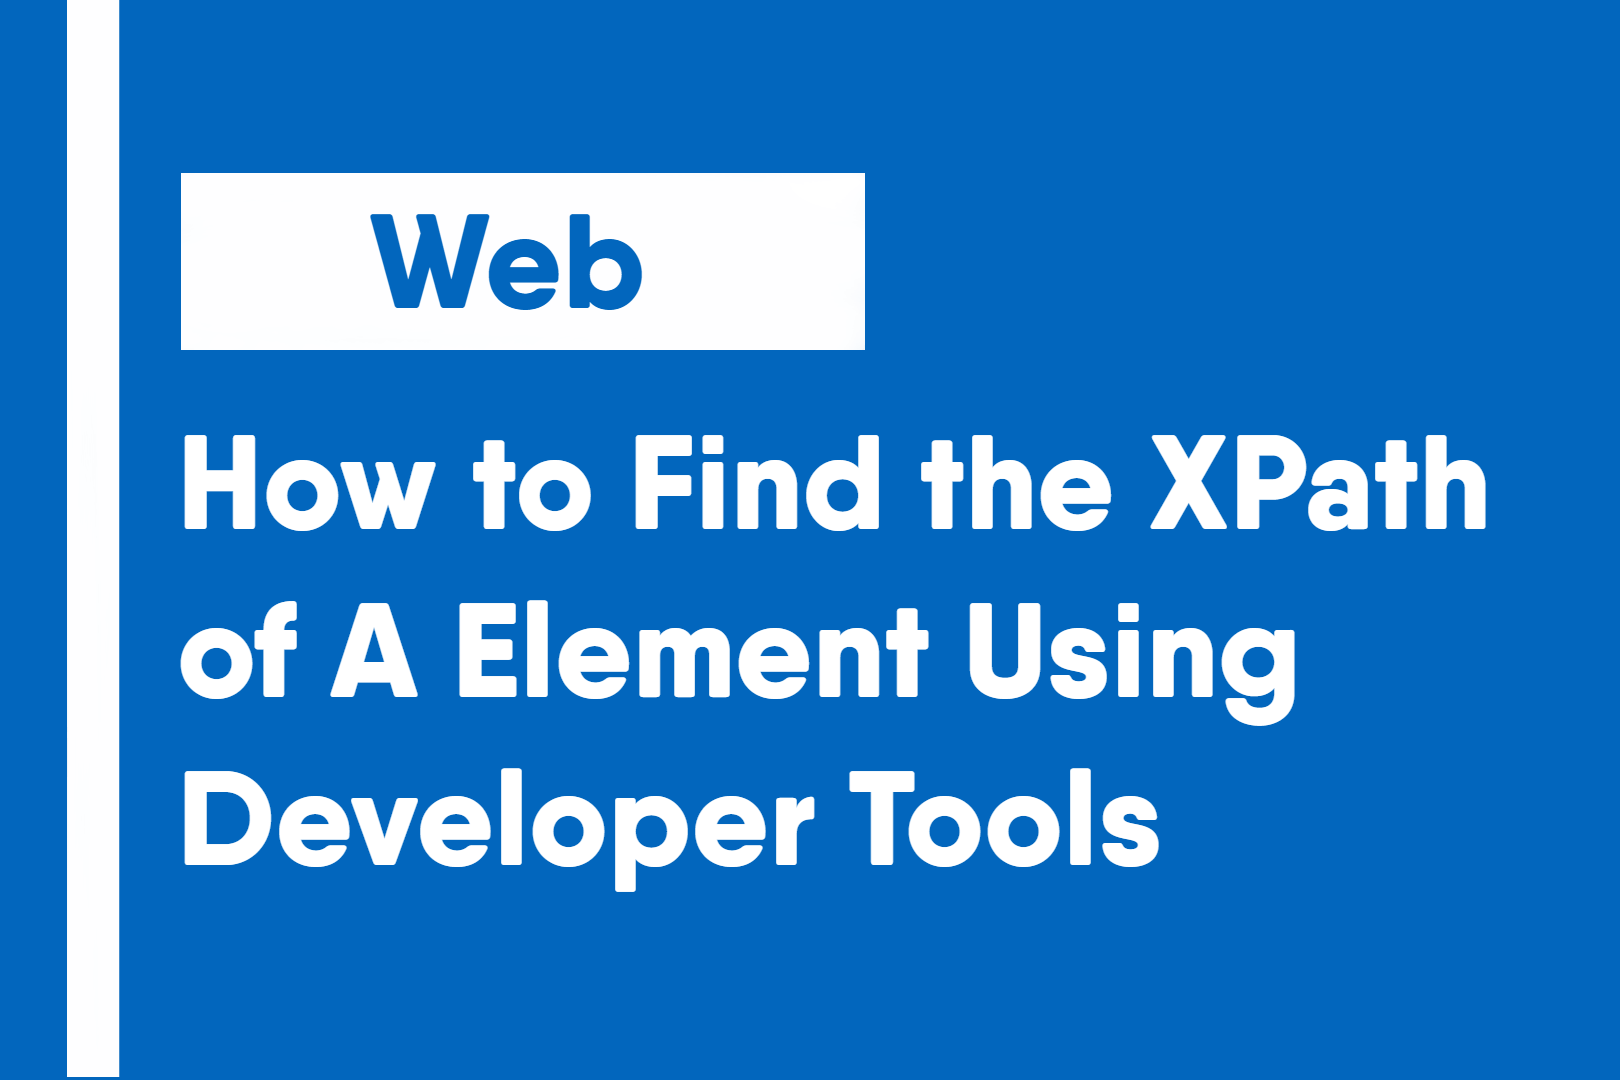 How to Find the XPath of A Element Using Developer Tools